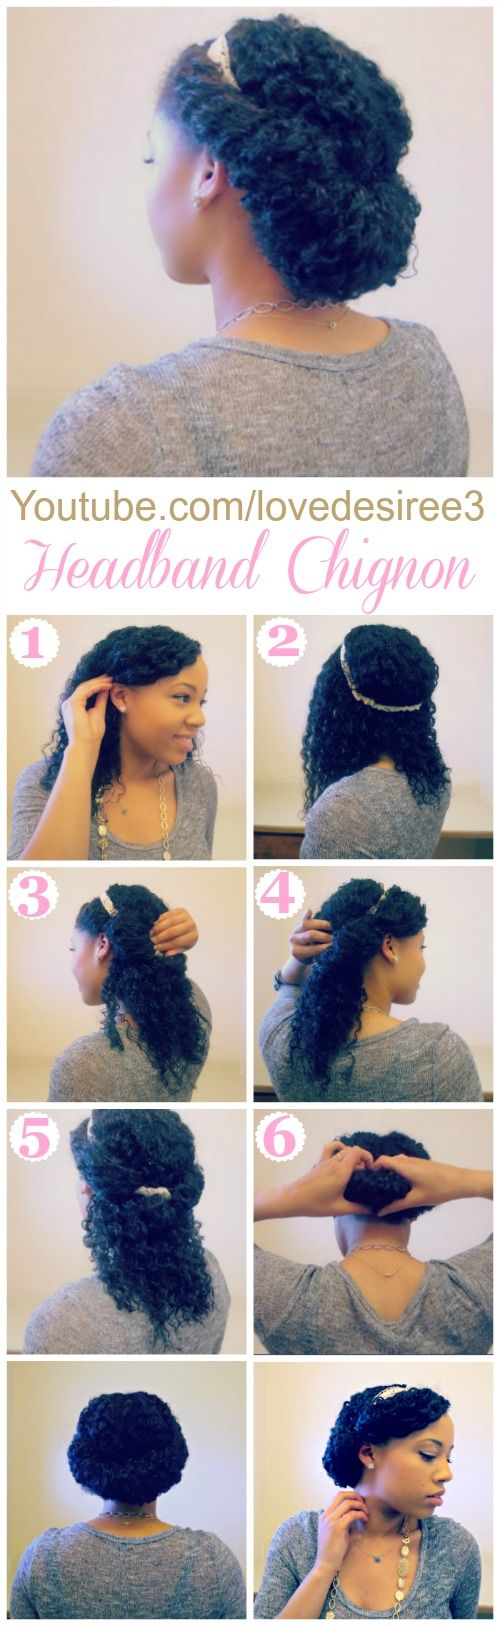 Love desiree quick and easy spring hairstyle headband chignon on